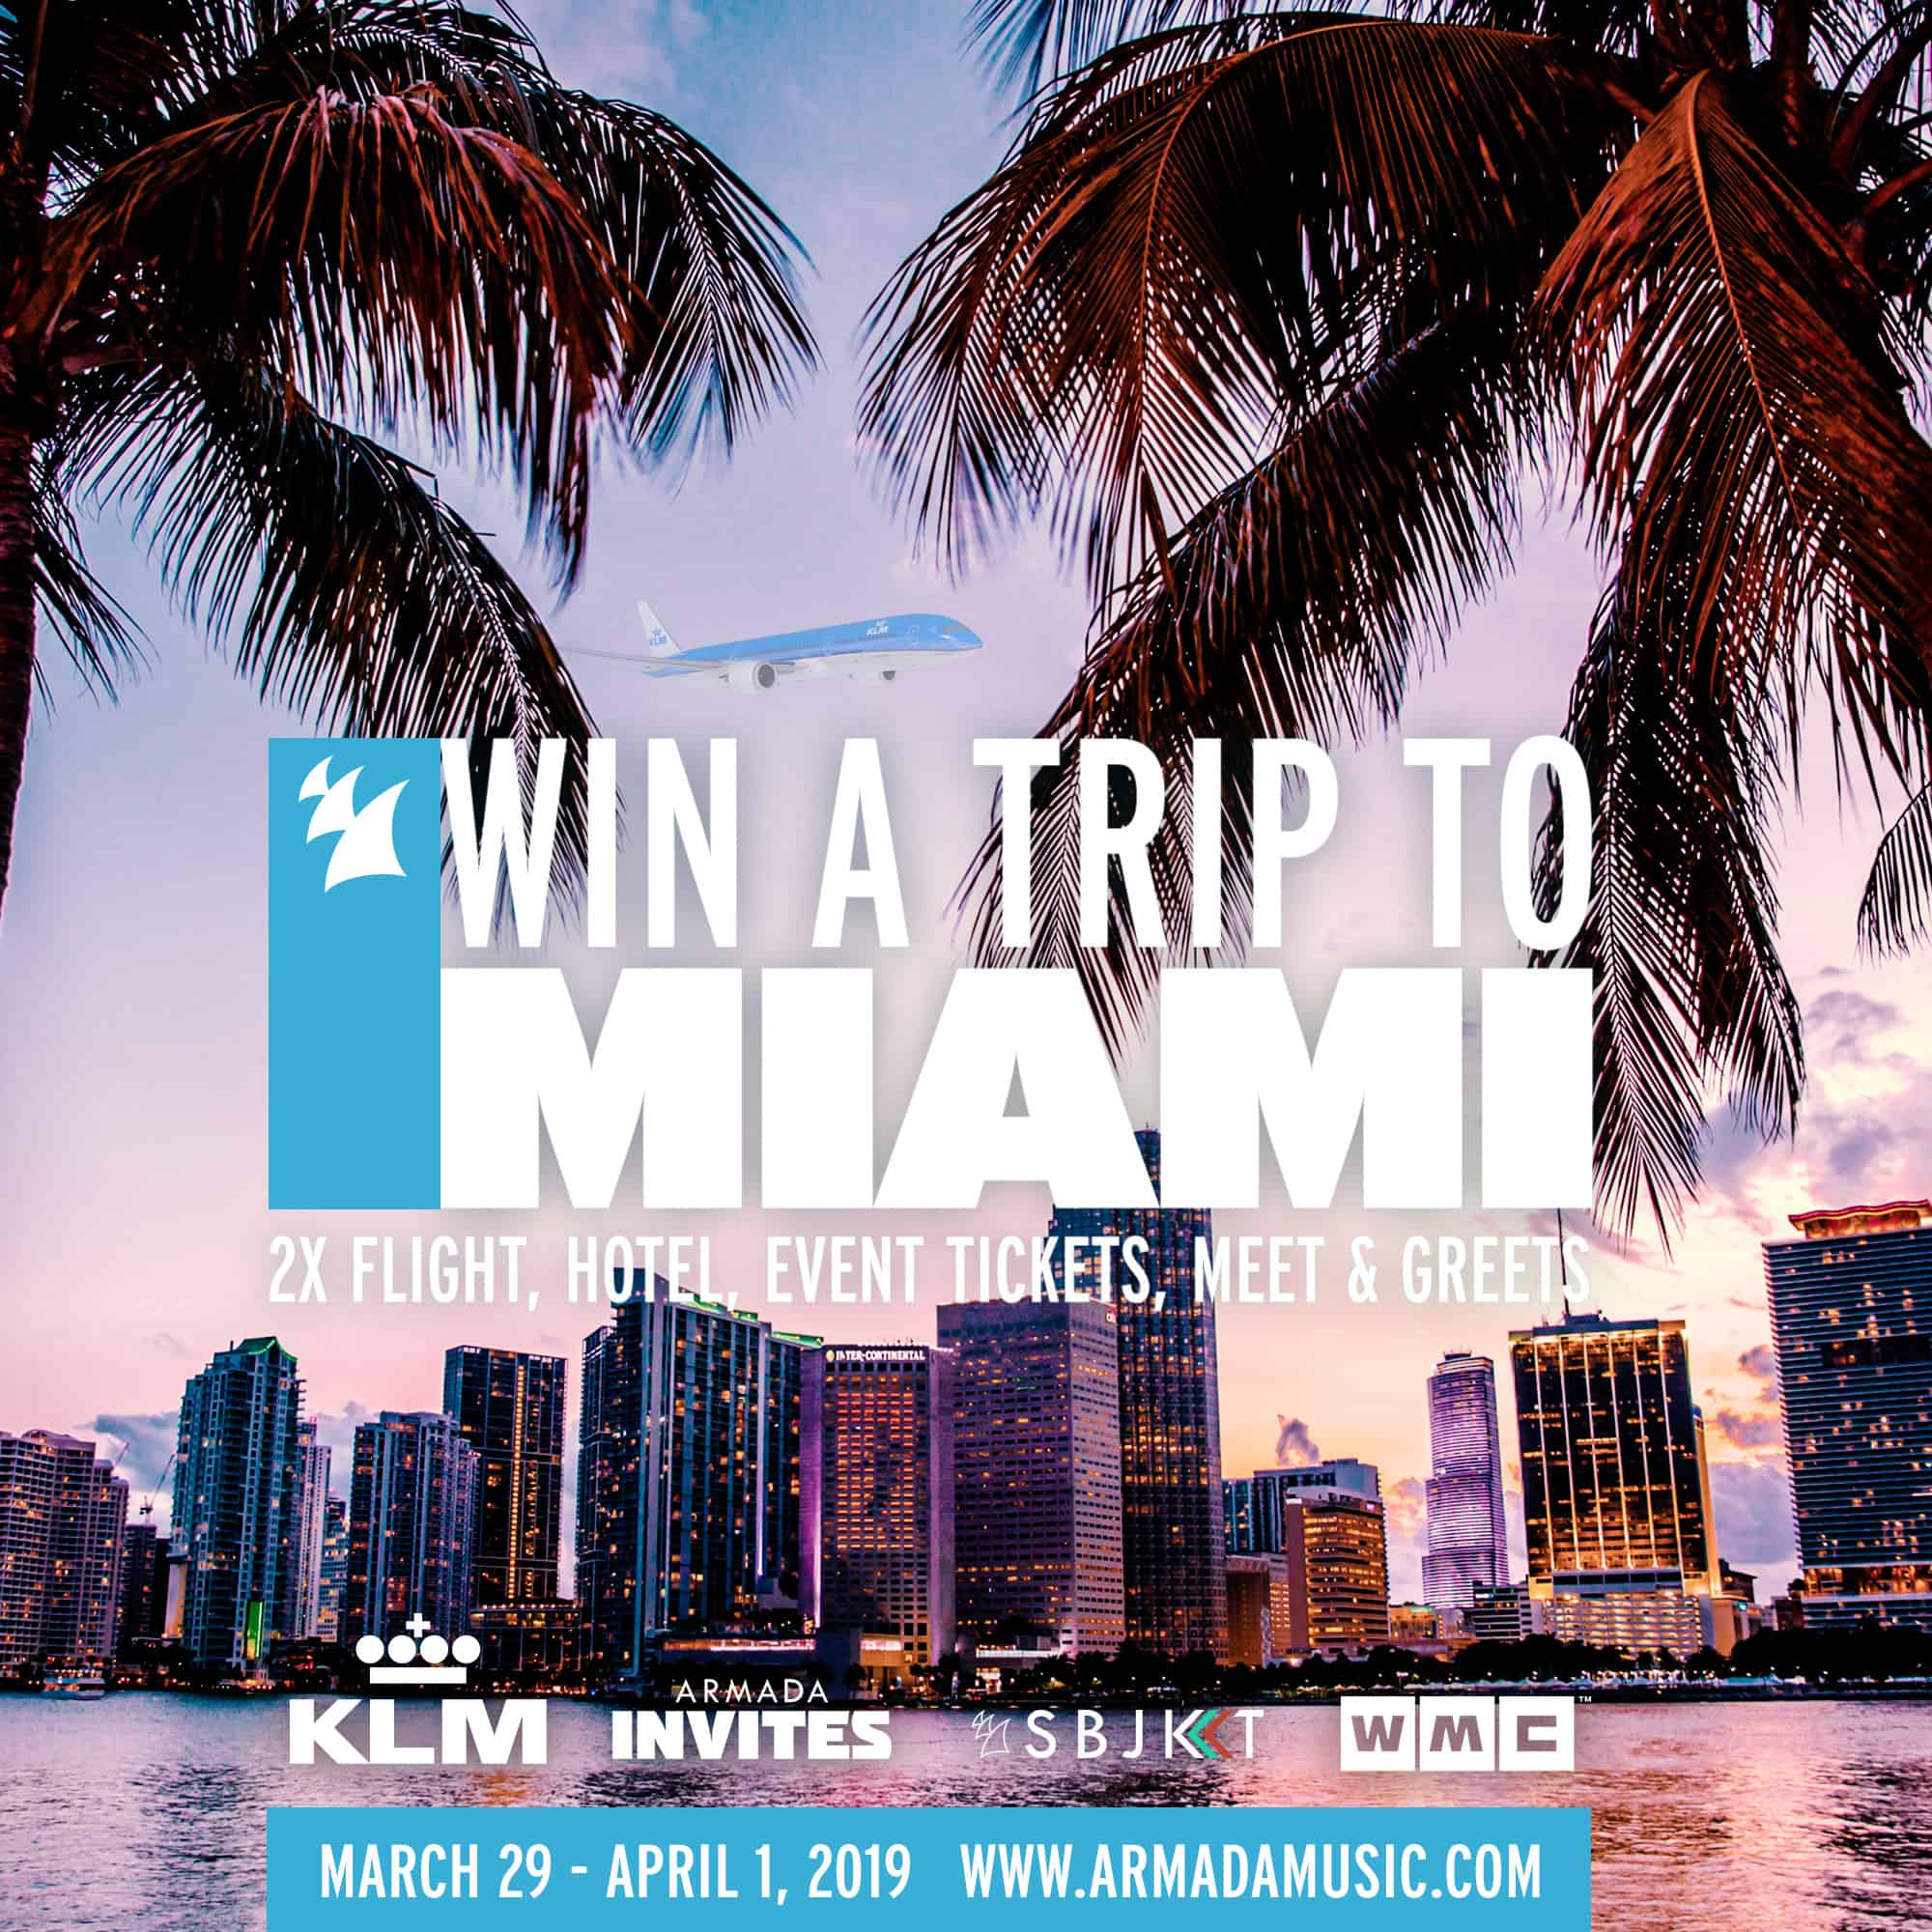 Summer comes early with Armada Music and KLM Royal Dutch Airlines; win the ultimate Miami experience for two